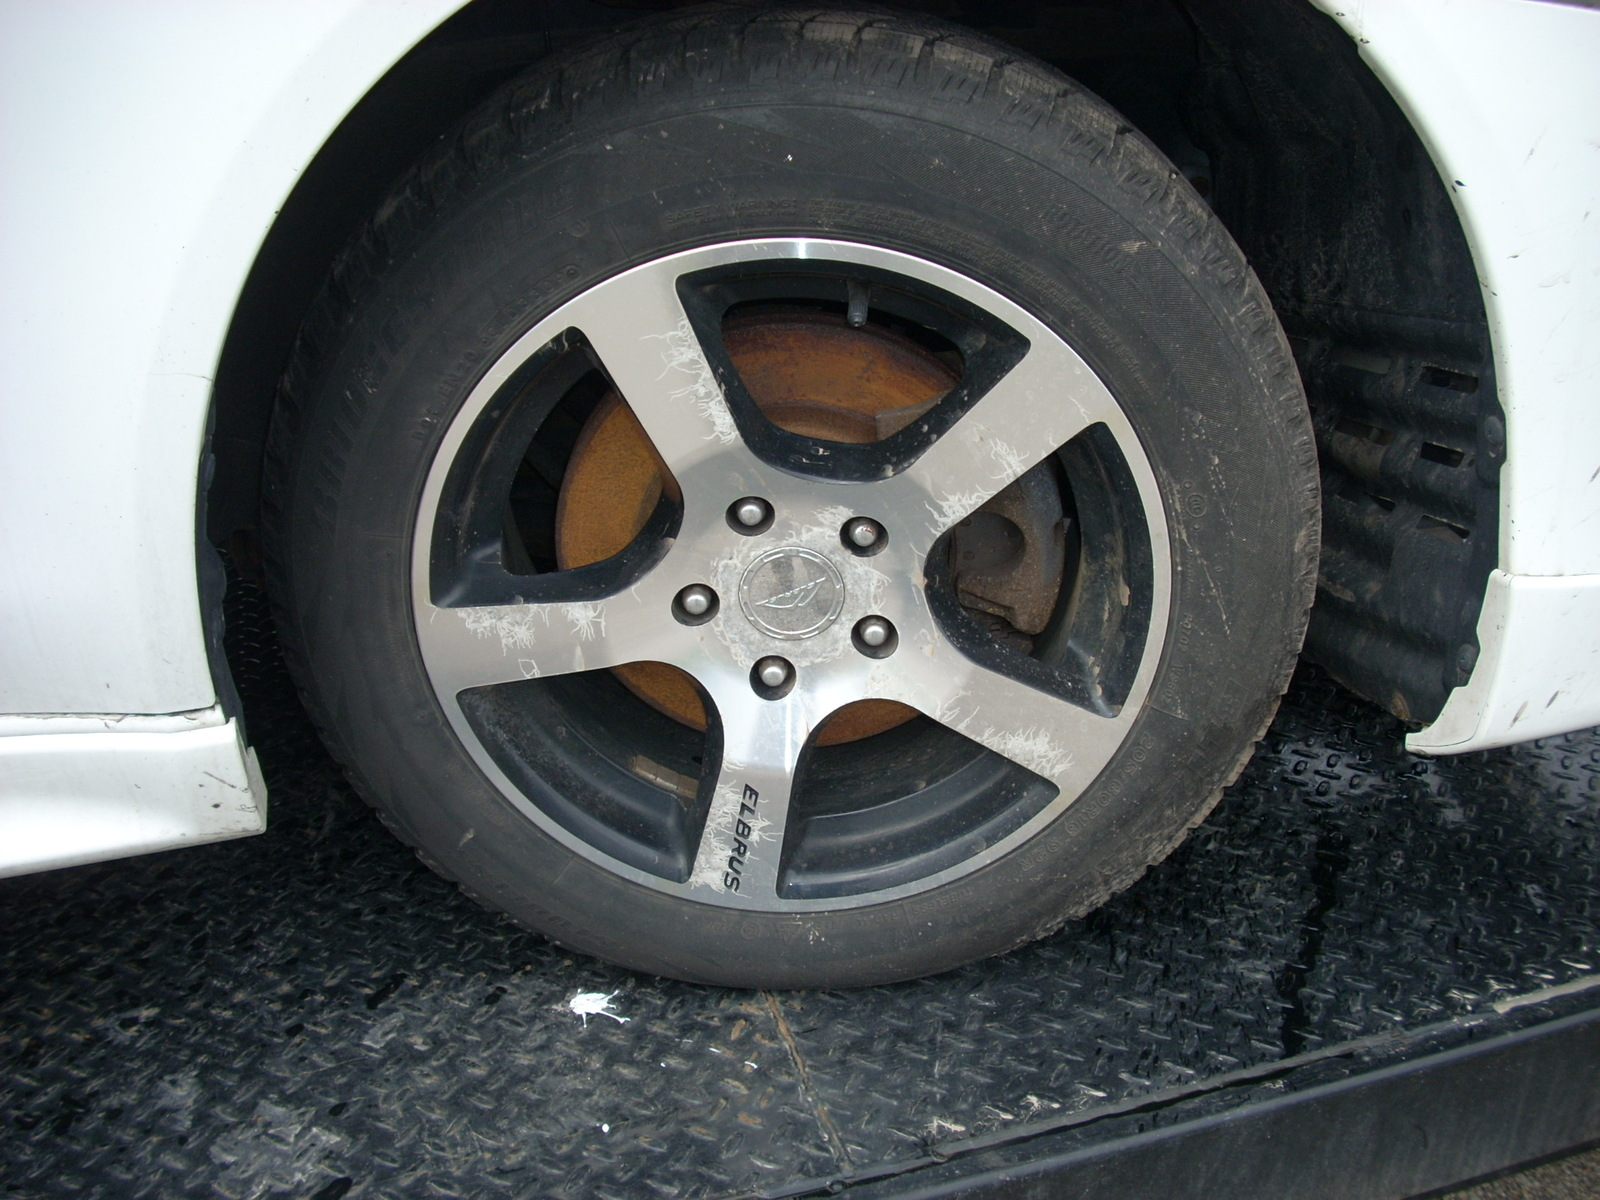 2009 MITSUBISHI LANCER ELBRUS WHEEL WITH BRIDGESTONE TIRE